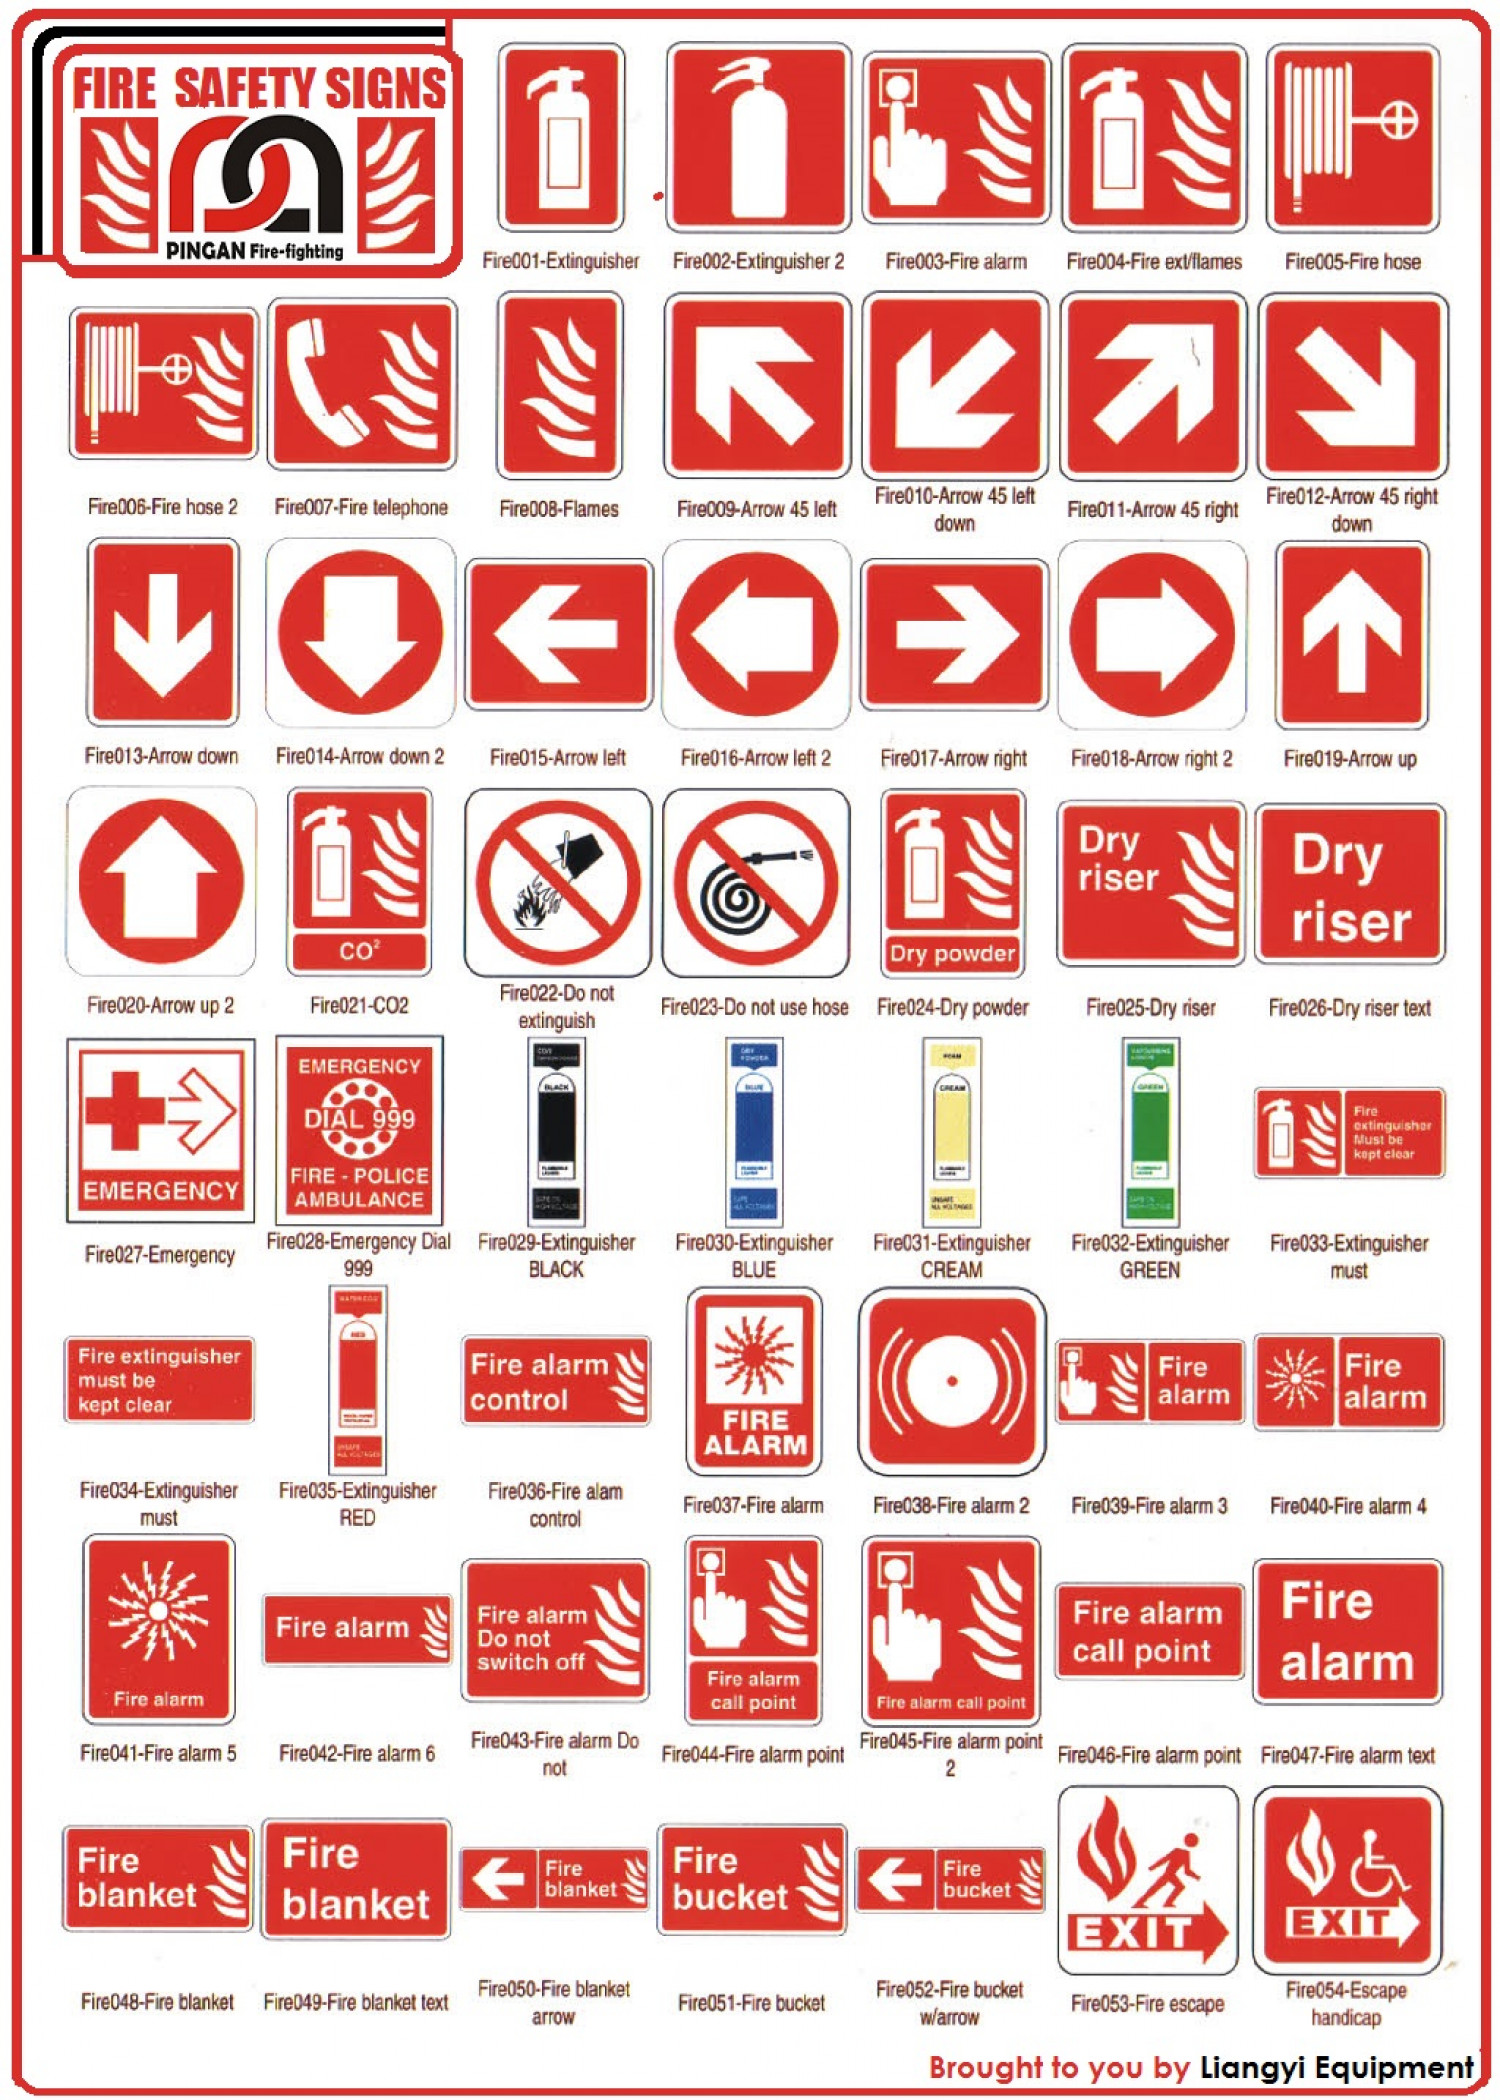 Fire Safety Signs By Liangyiequipment Visual Ly